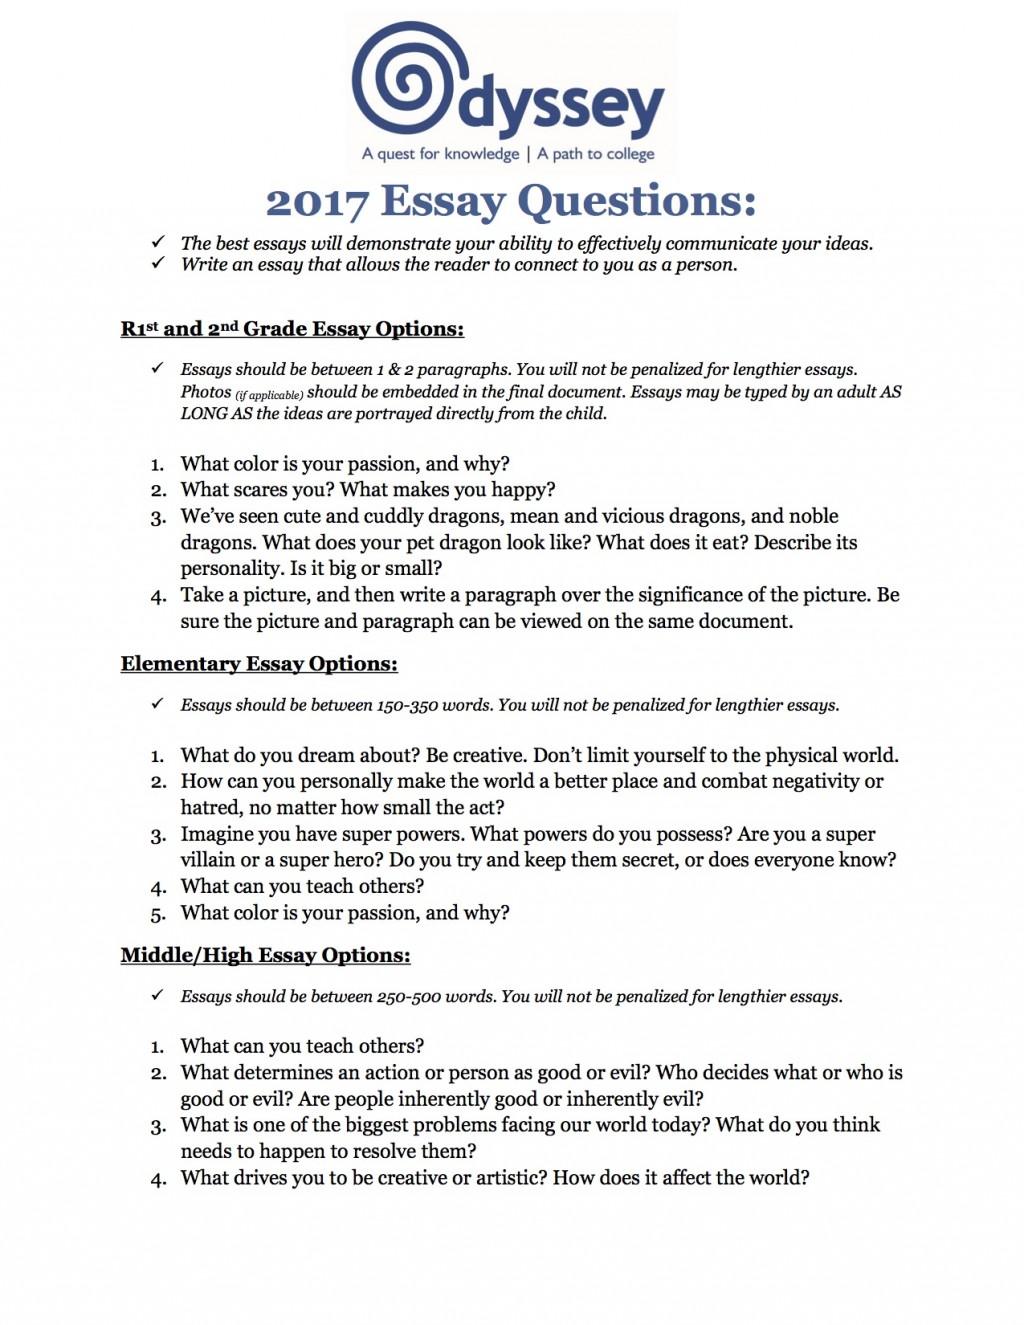 013 Argumentative Essay Topics Example Persuasive Outline For Middle School Students L Beautiful 2017 The Most Popular Of List Cxc Large